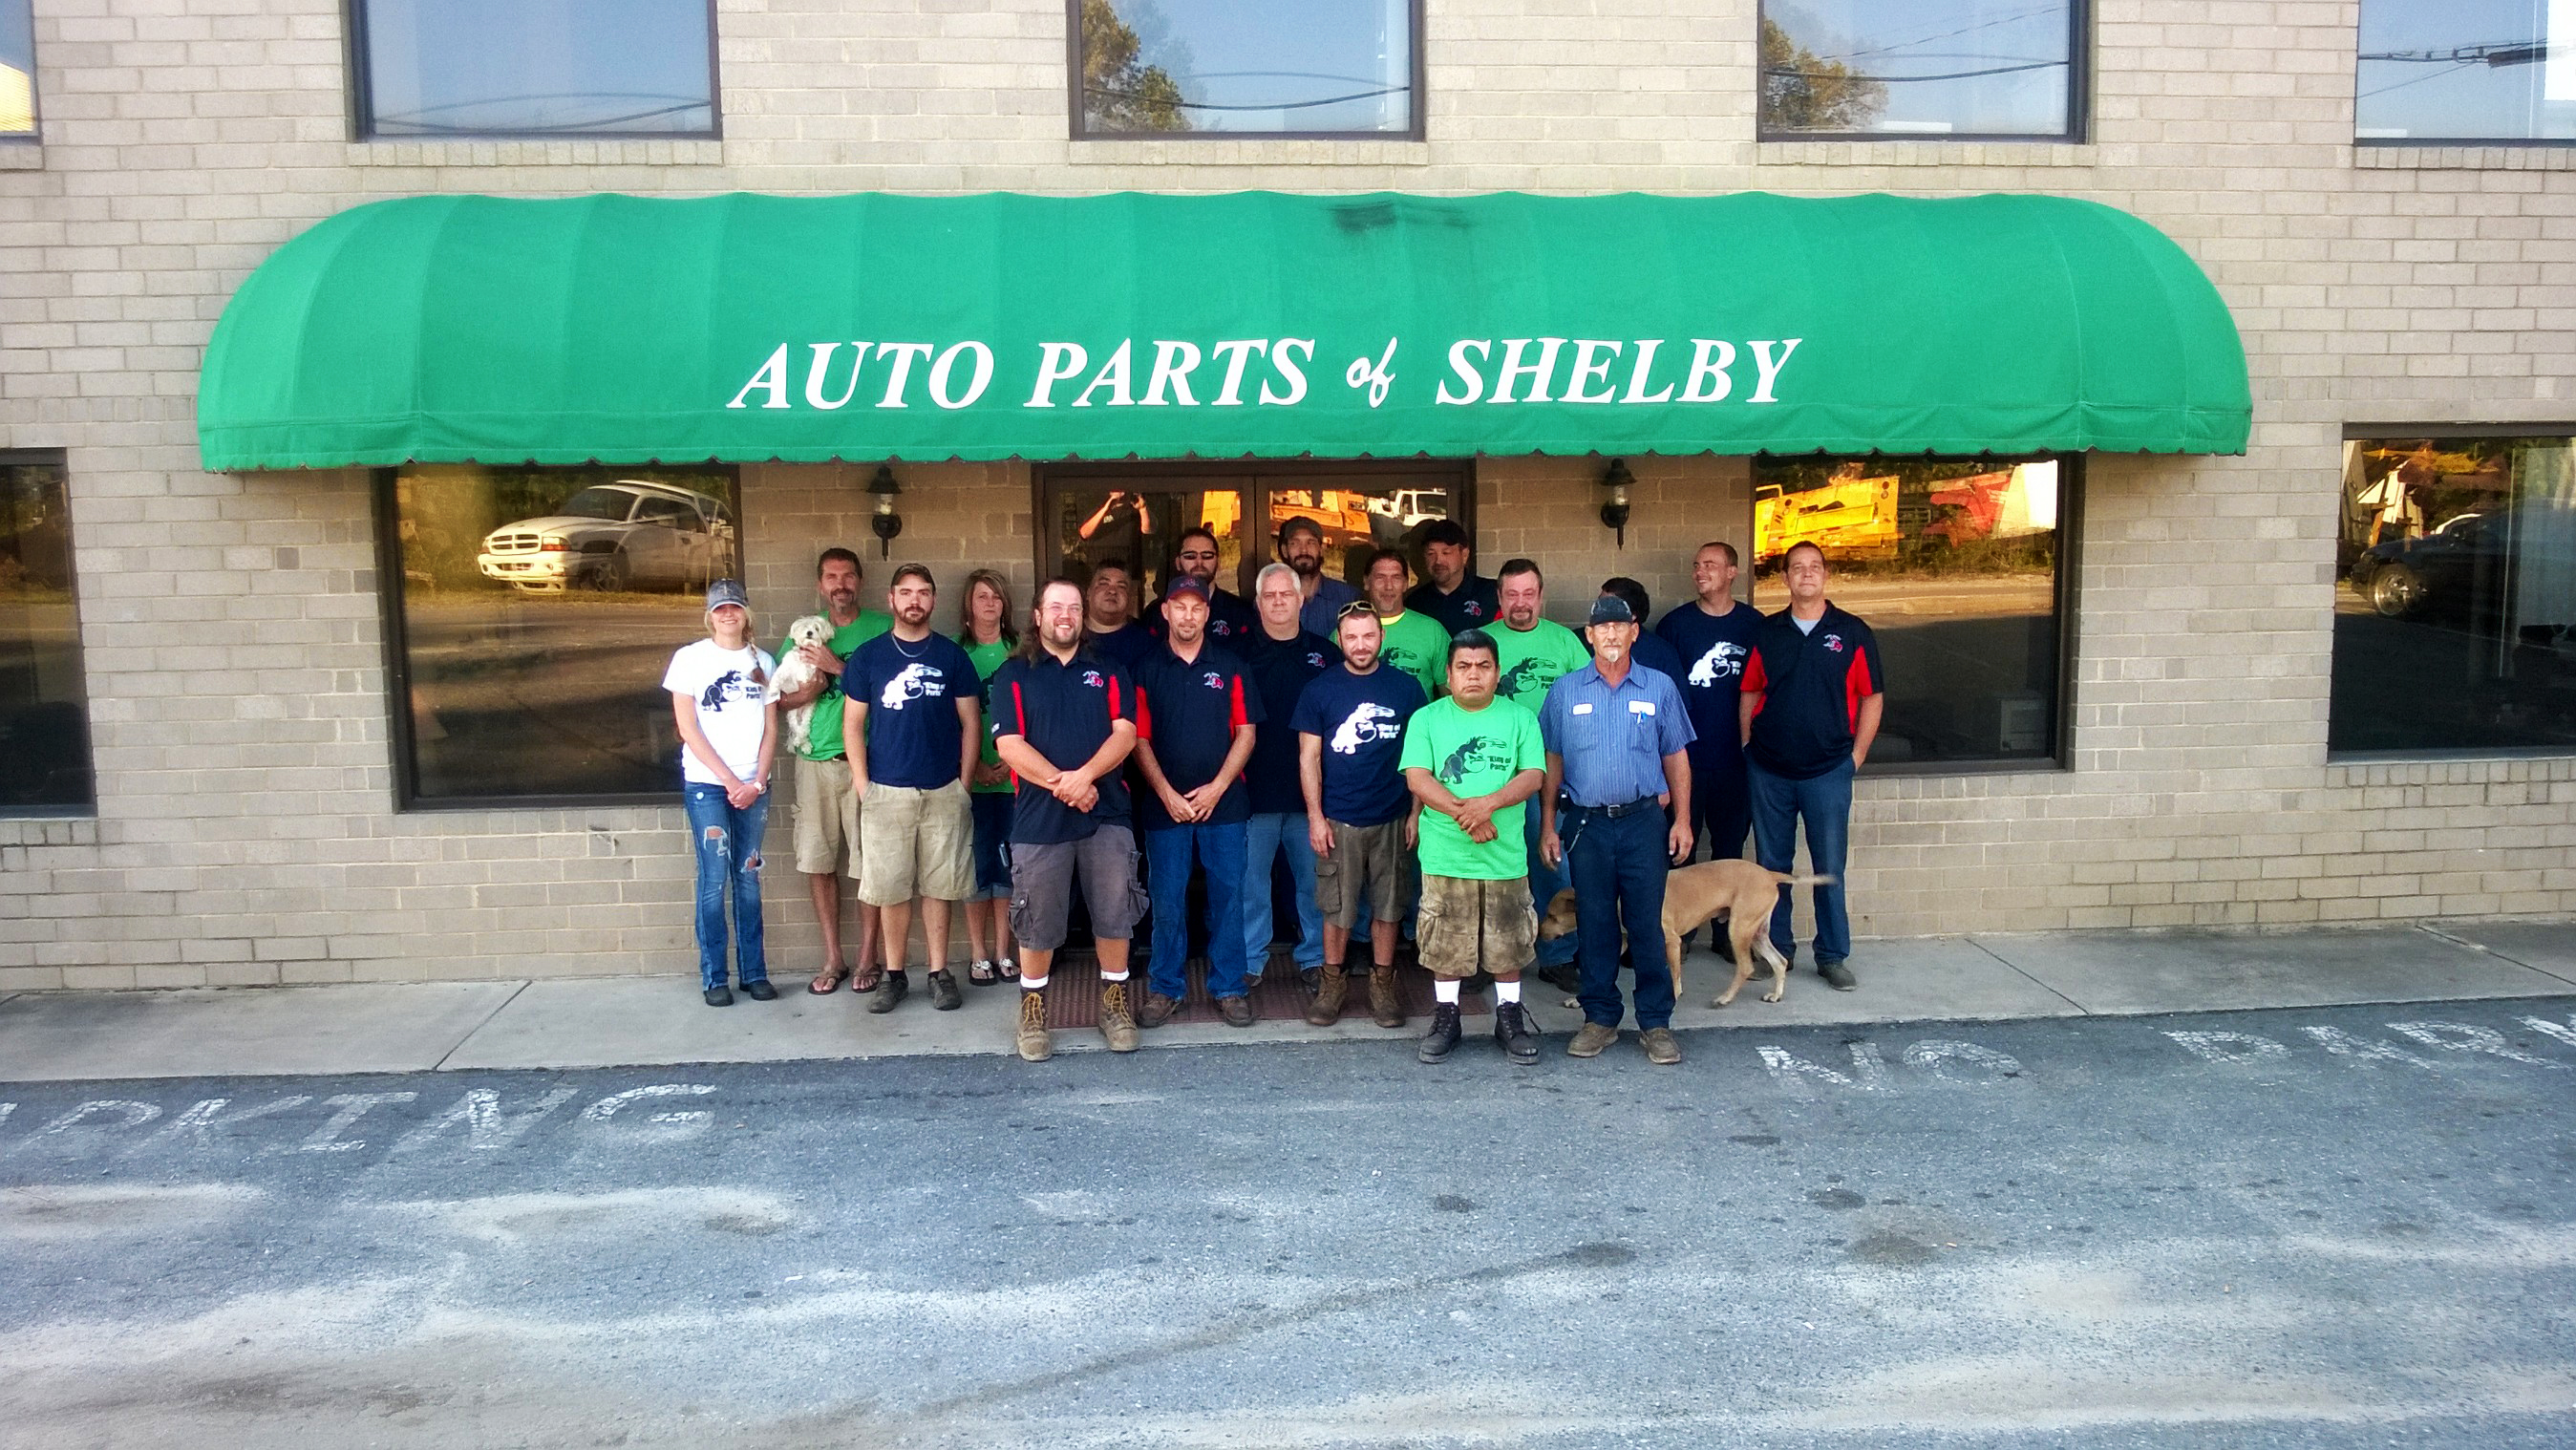 Auto Parts of Shelby crew including Molly and Butter